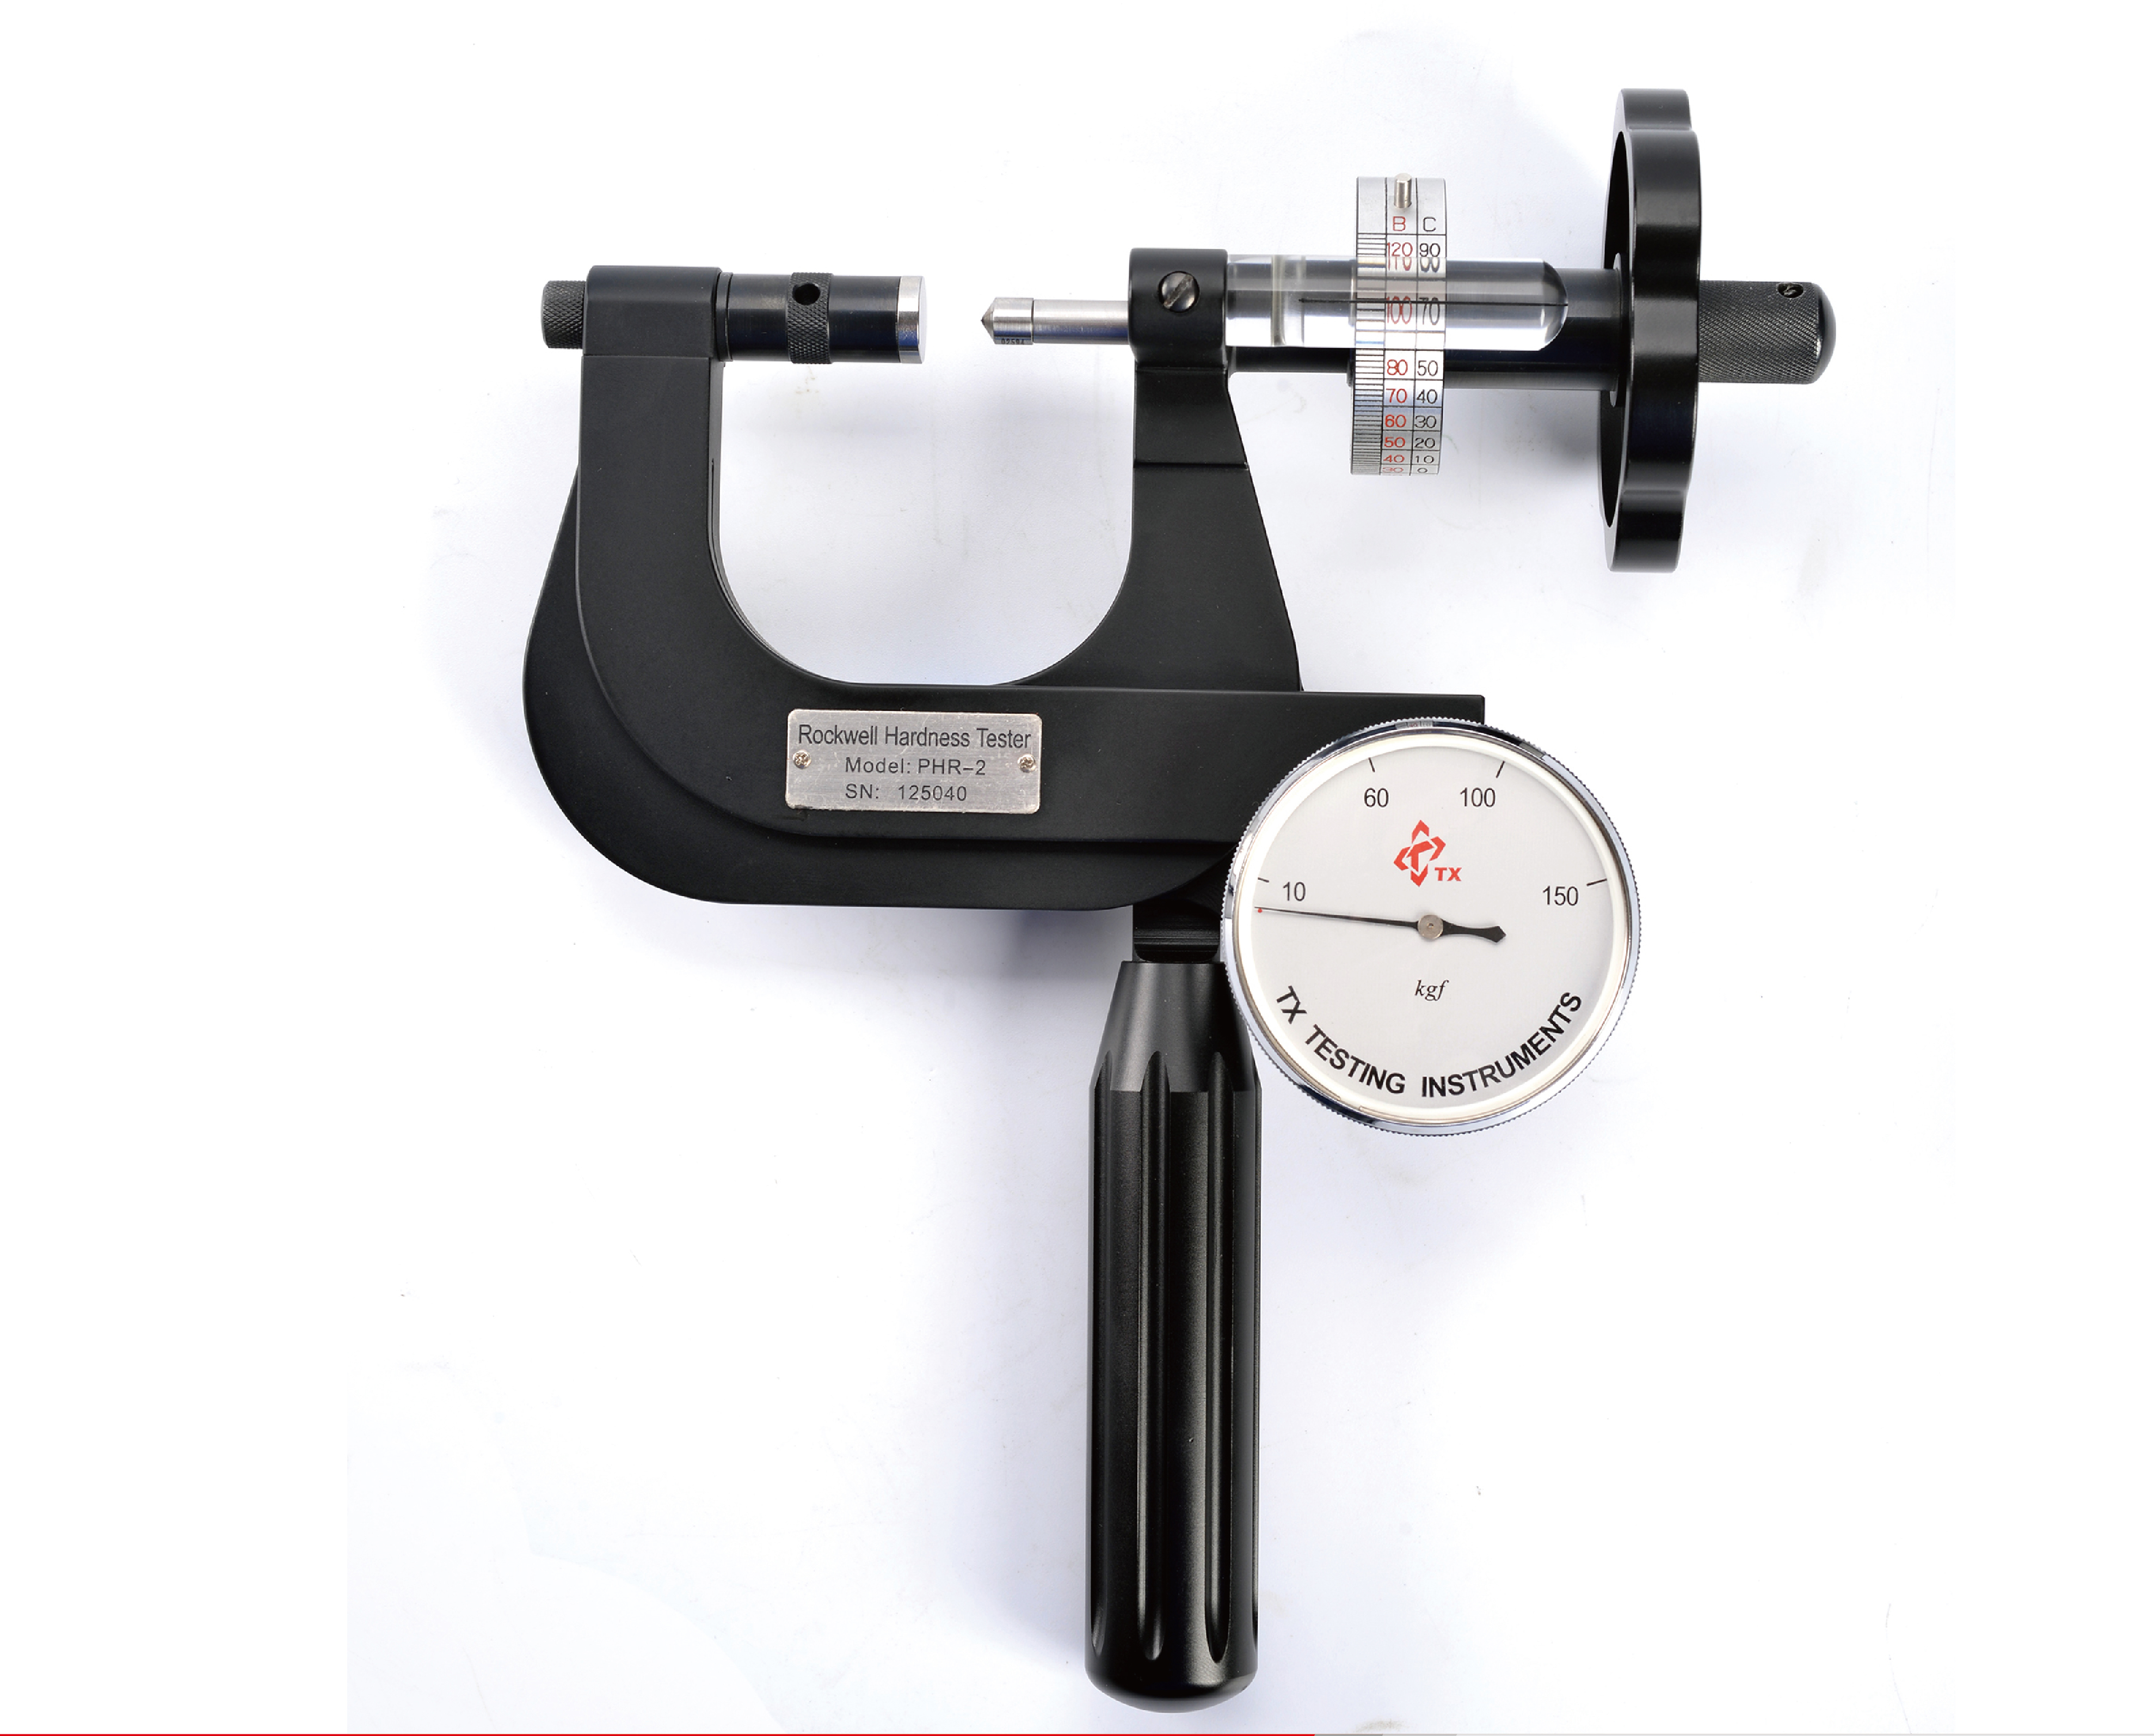 Solution of Portable Rockwell Hardness Tester